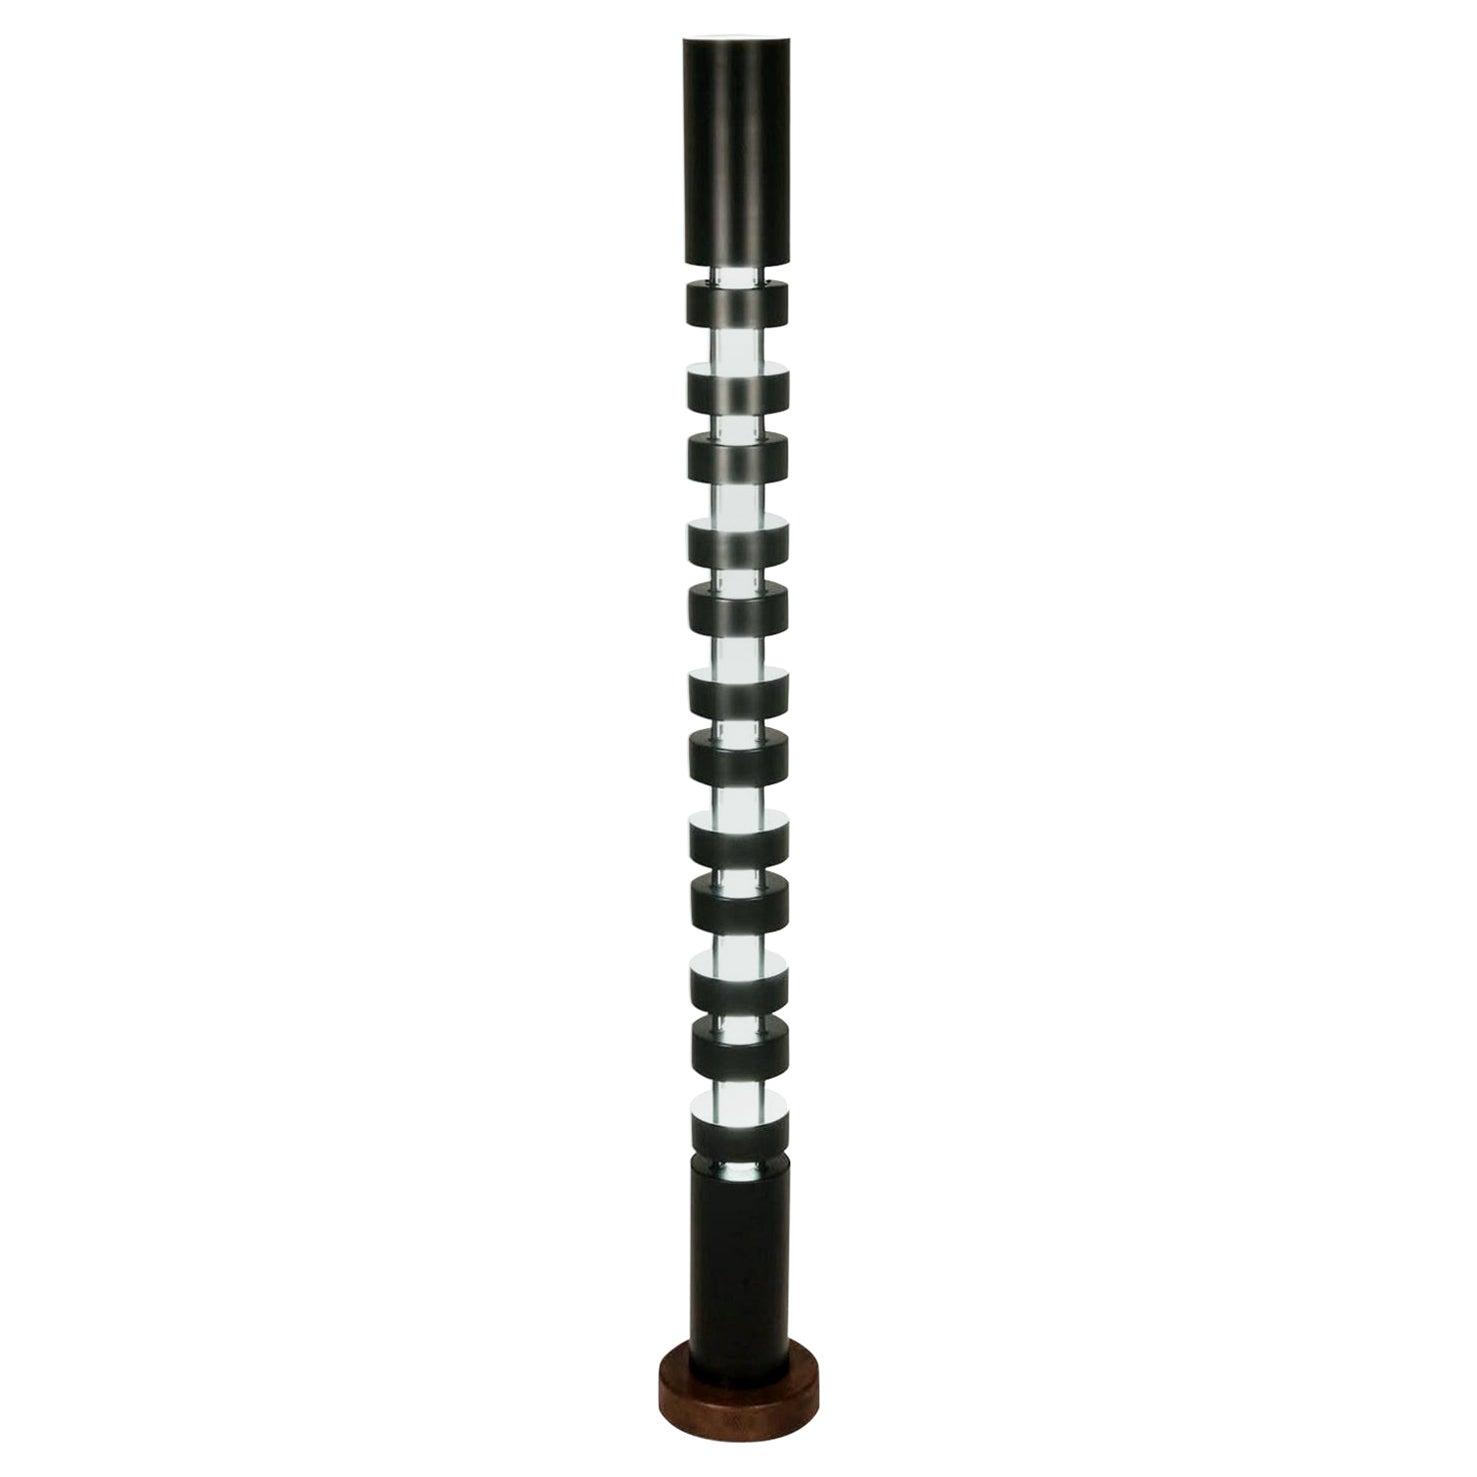 Serge Mouille Large TOTEM Column Floor Lamp